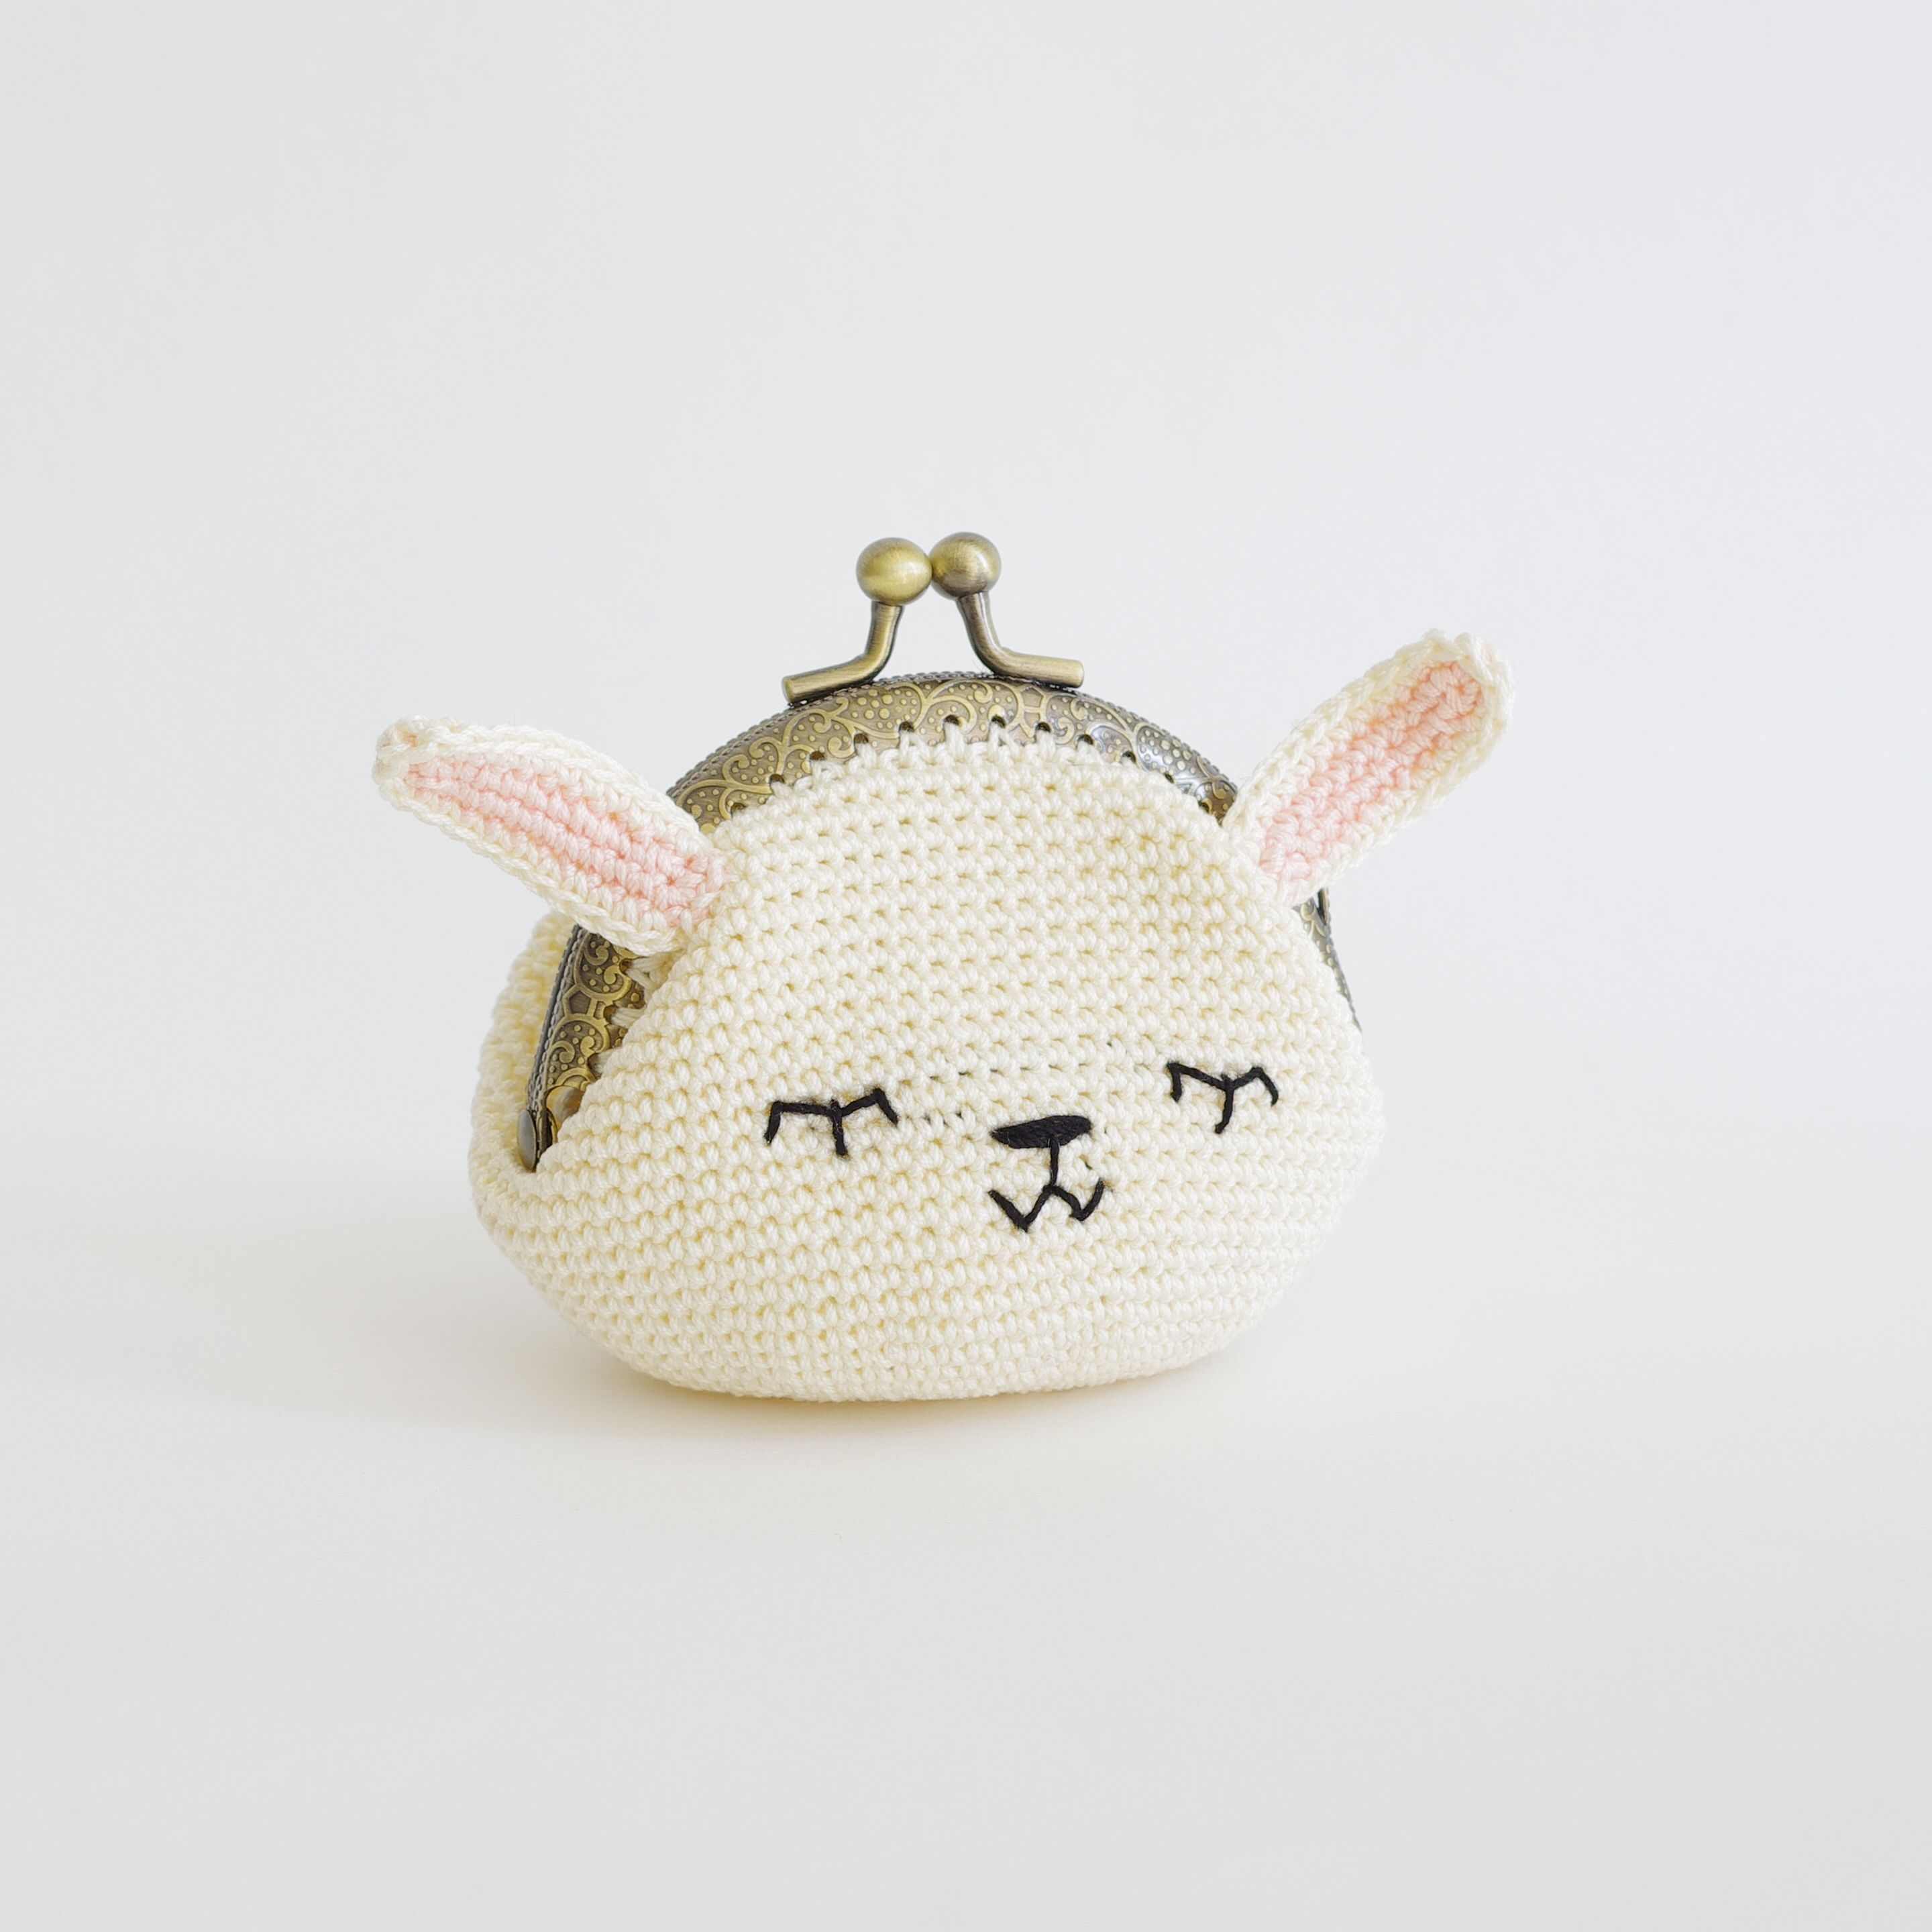 Amigurumi Pineapple Purse - All About Ami | 2880x2880